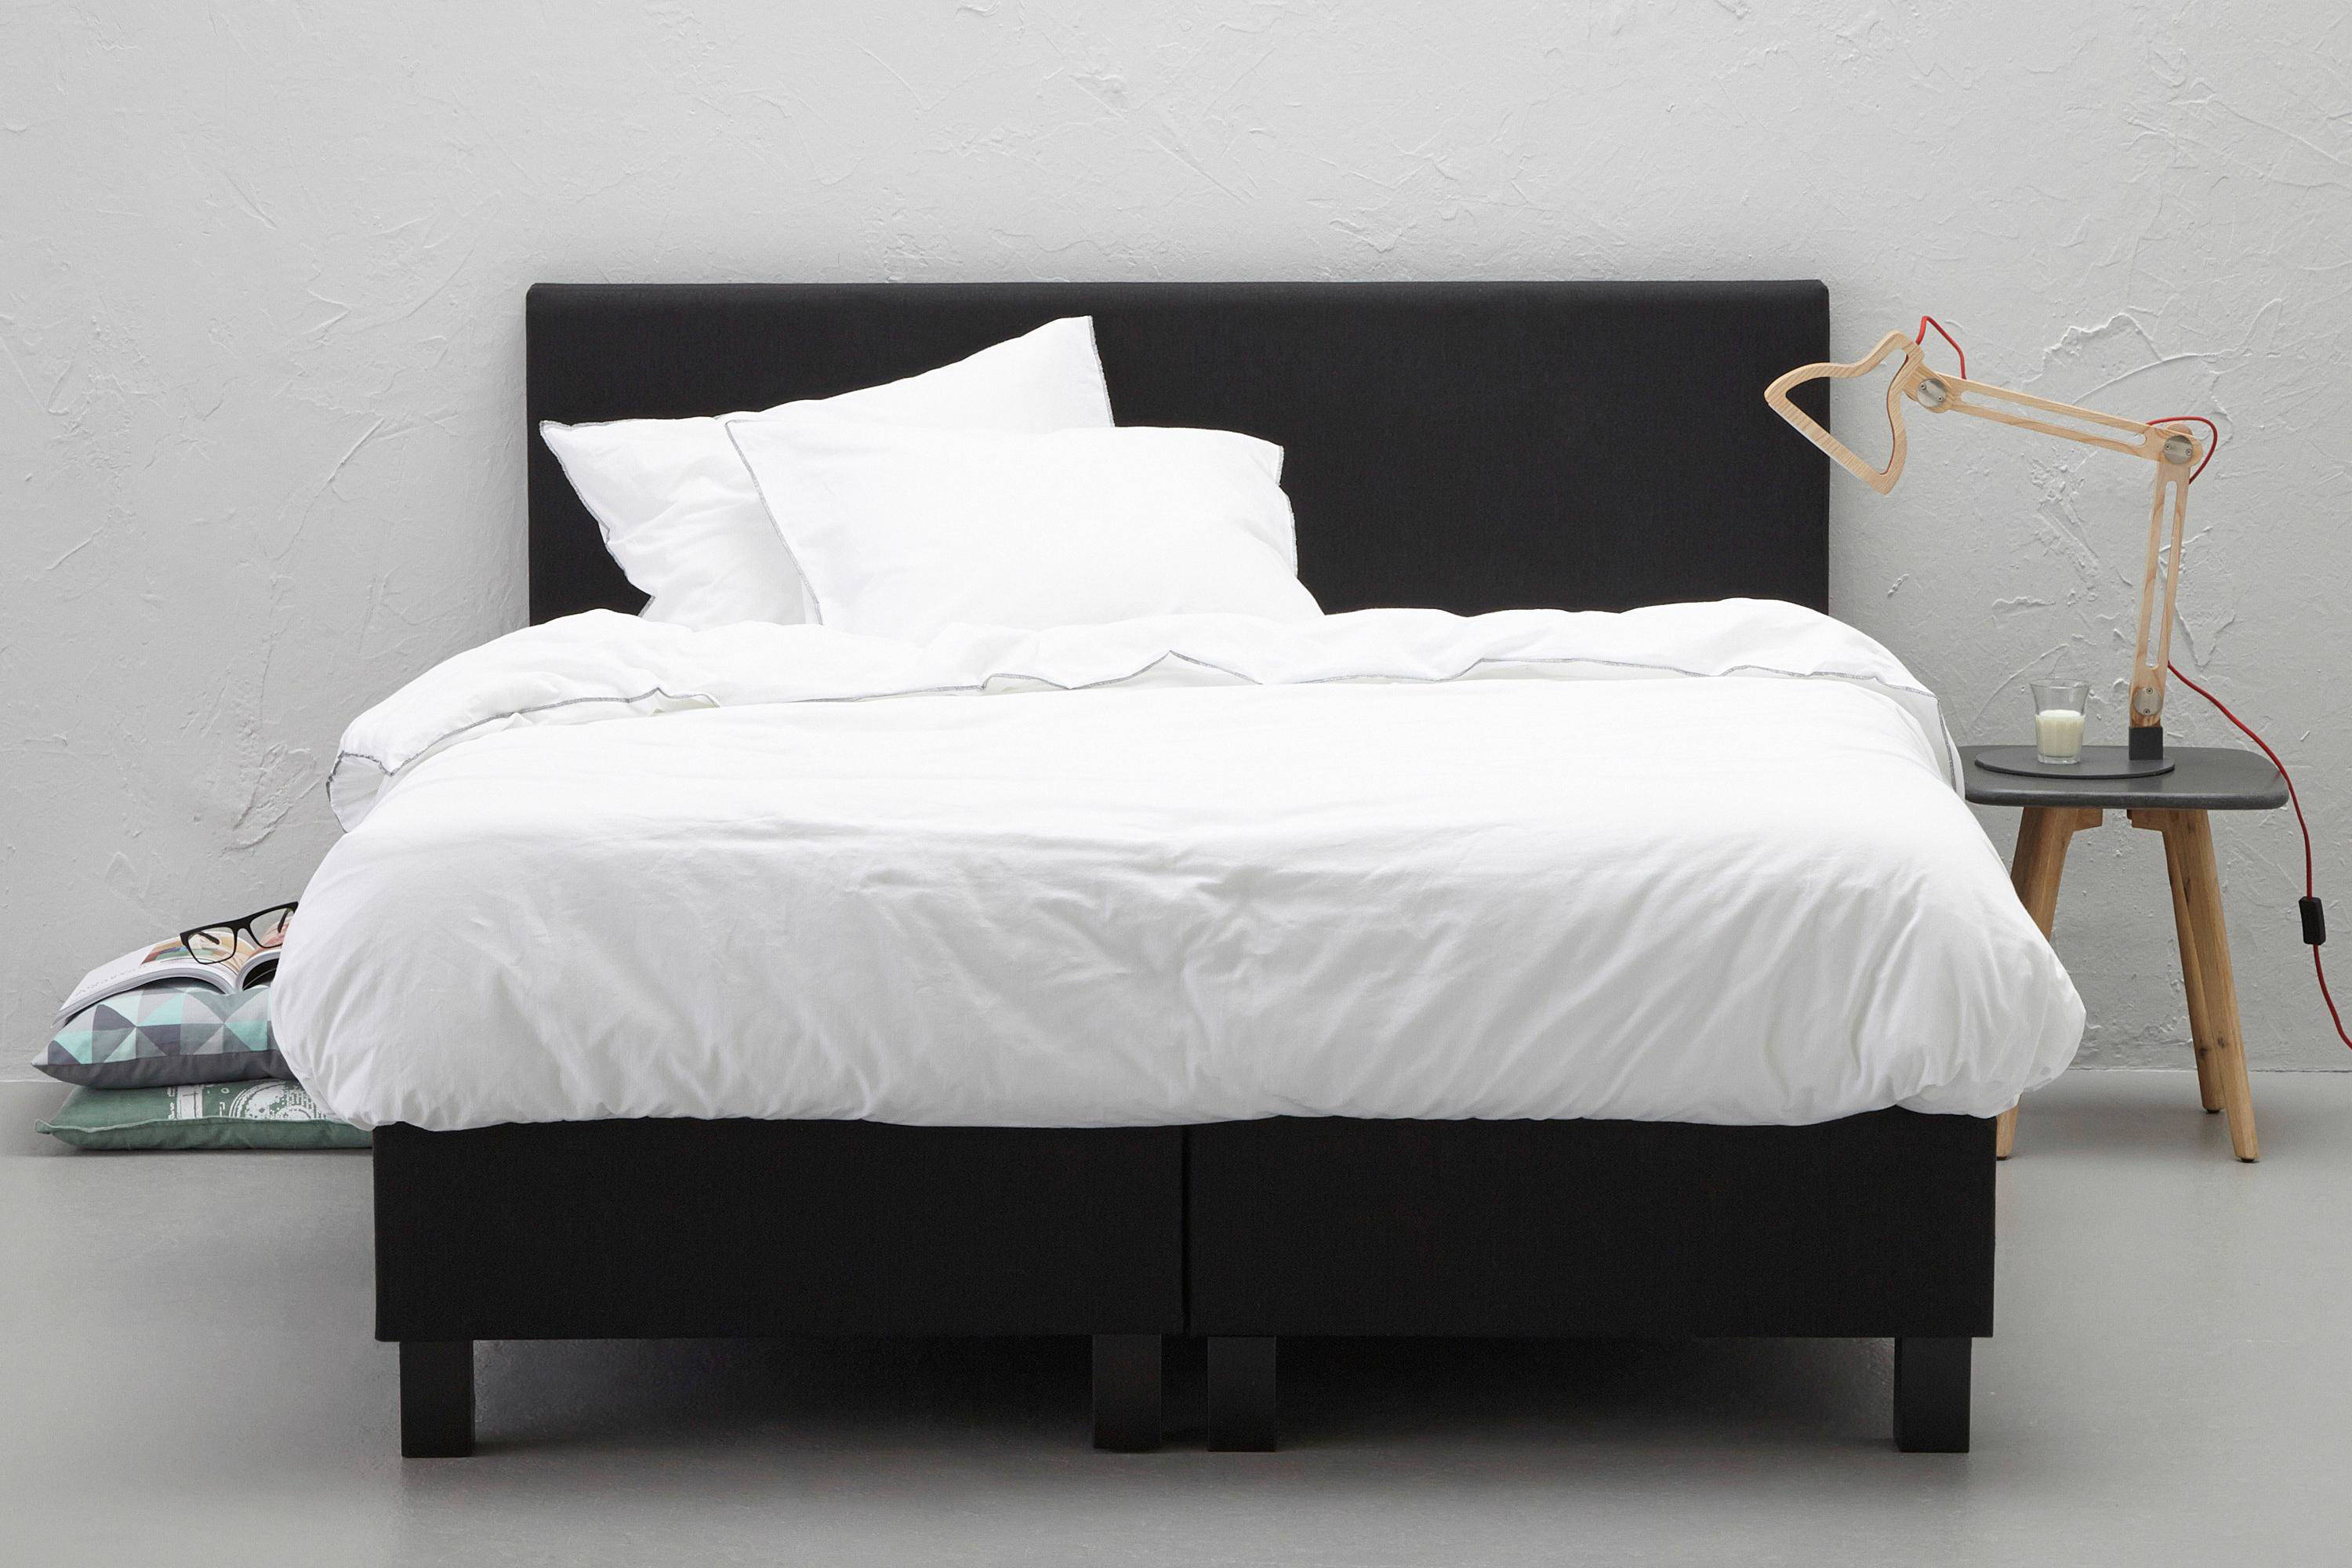 whkmp's own boxspring Stockholm